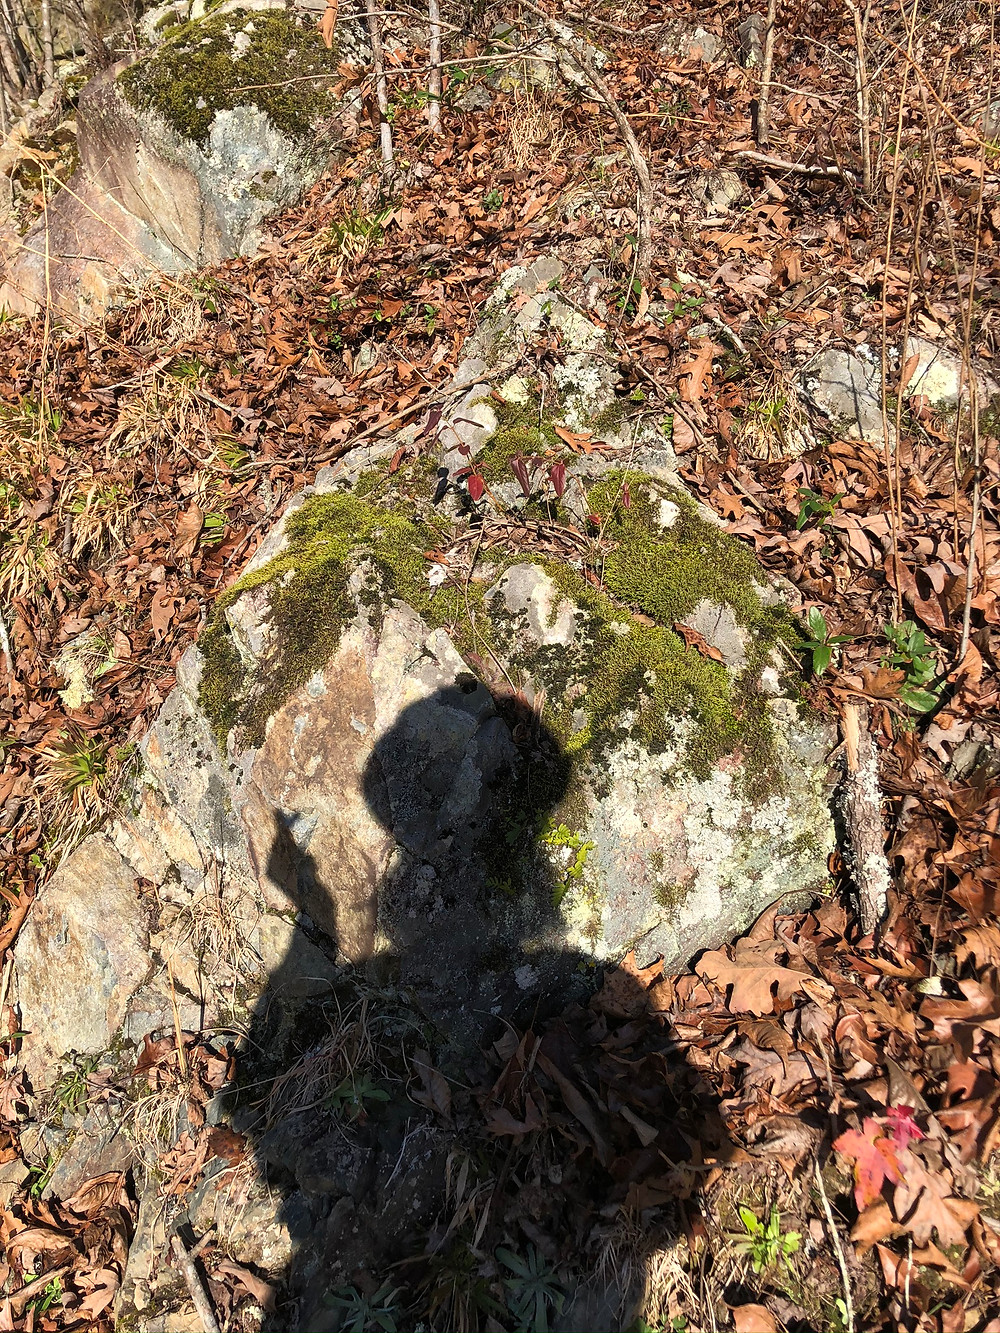 shadow of woman on mossy rock surrounded by brown and orange fallen leaves